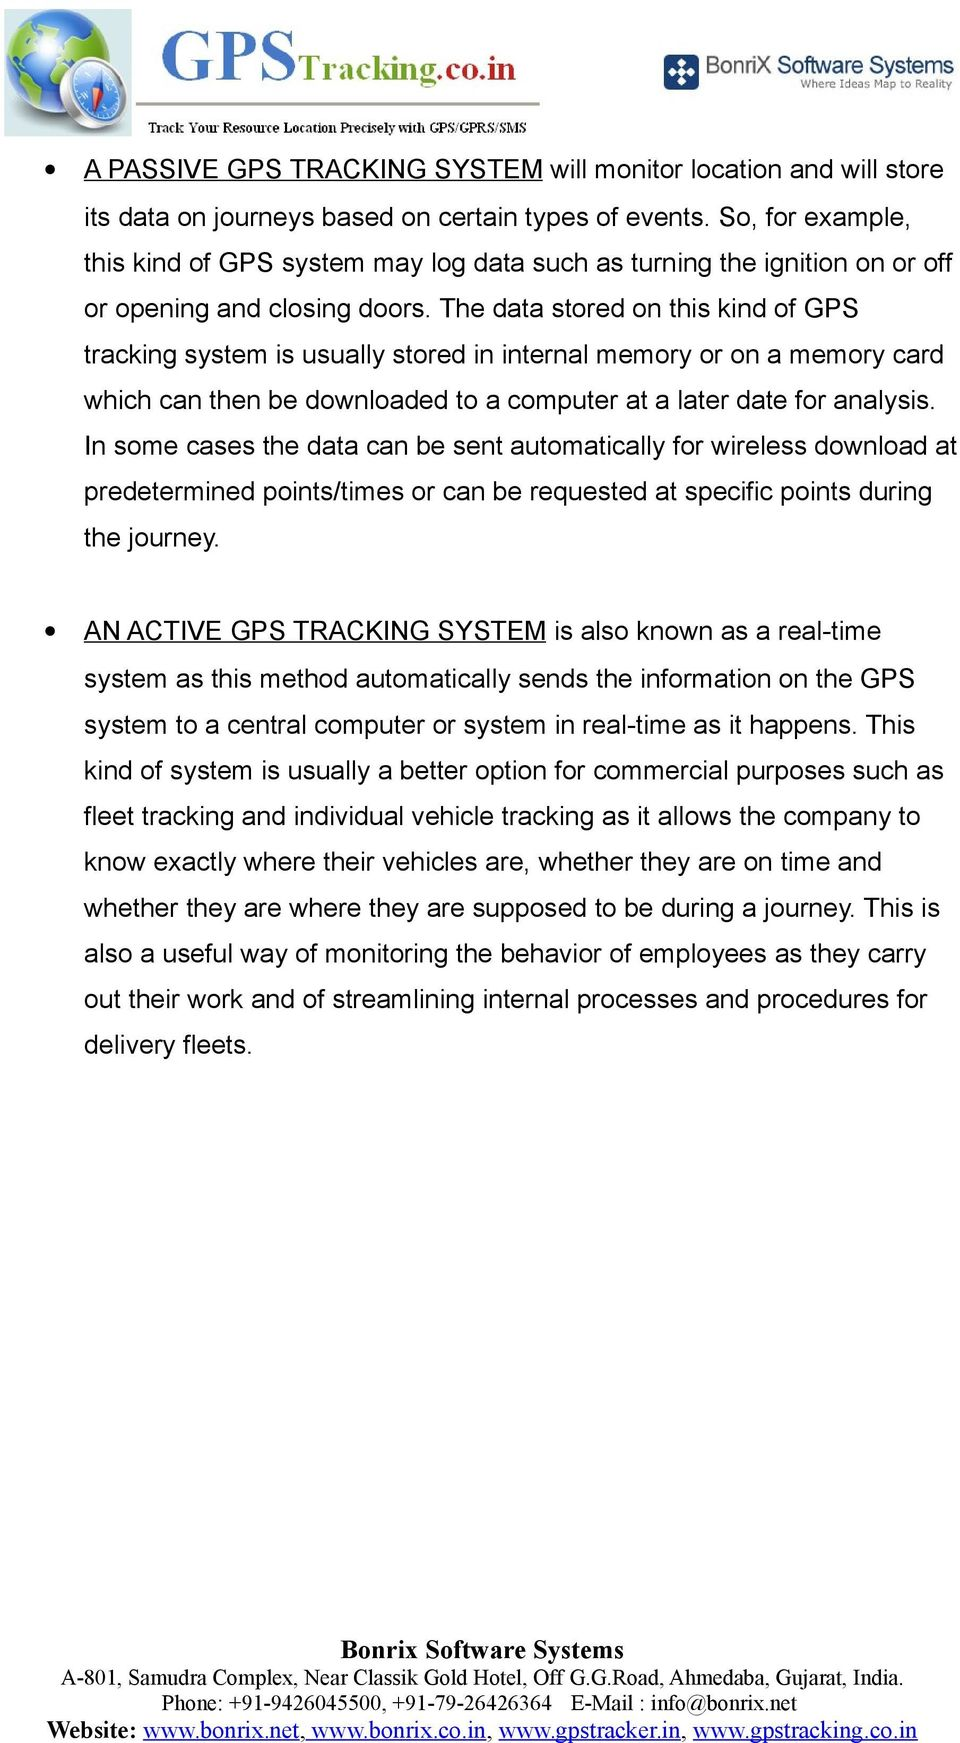 The data stored on this kind of GPS tracking system is usually stored in internal memory or on a memory card which can then be downloaded to a computer at a later date for analysis.